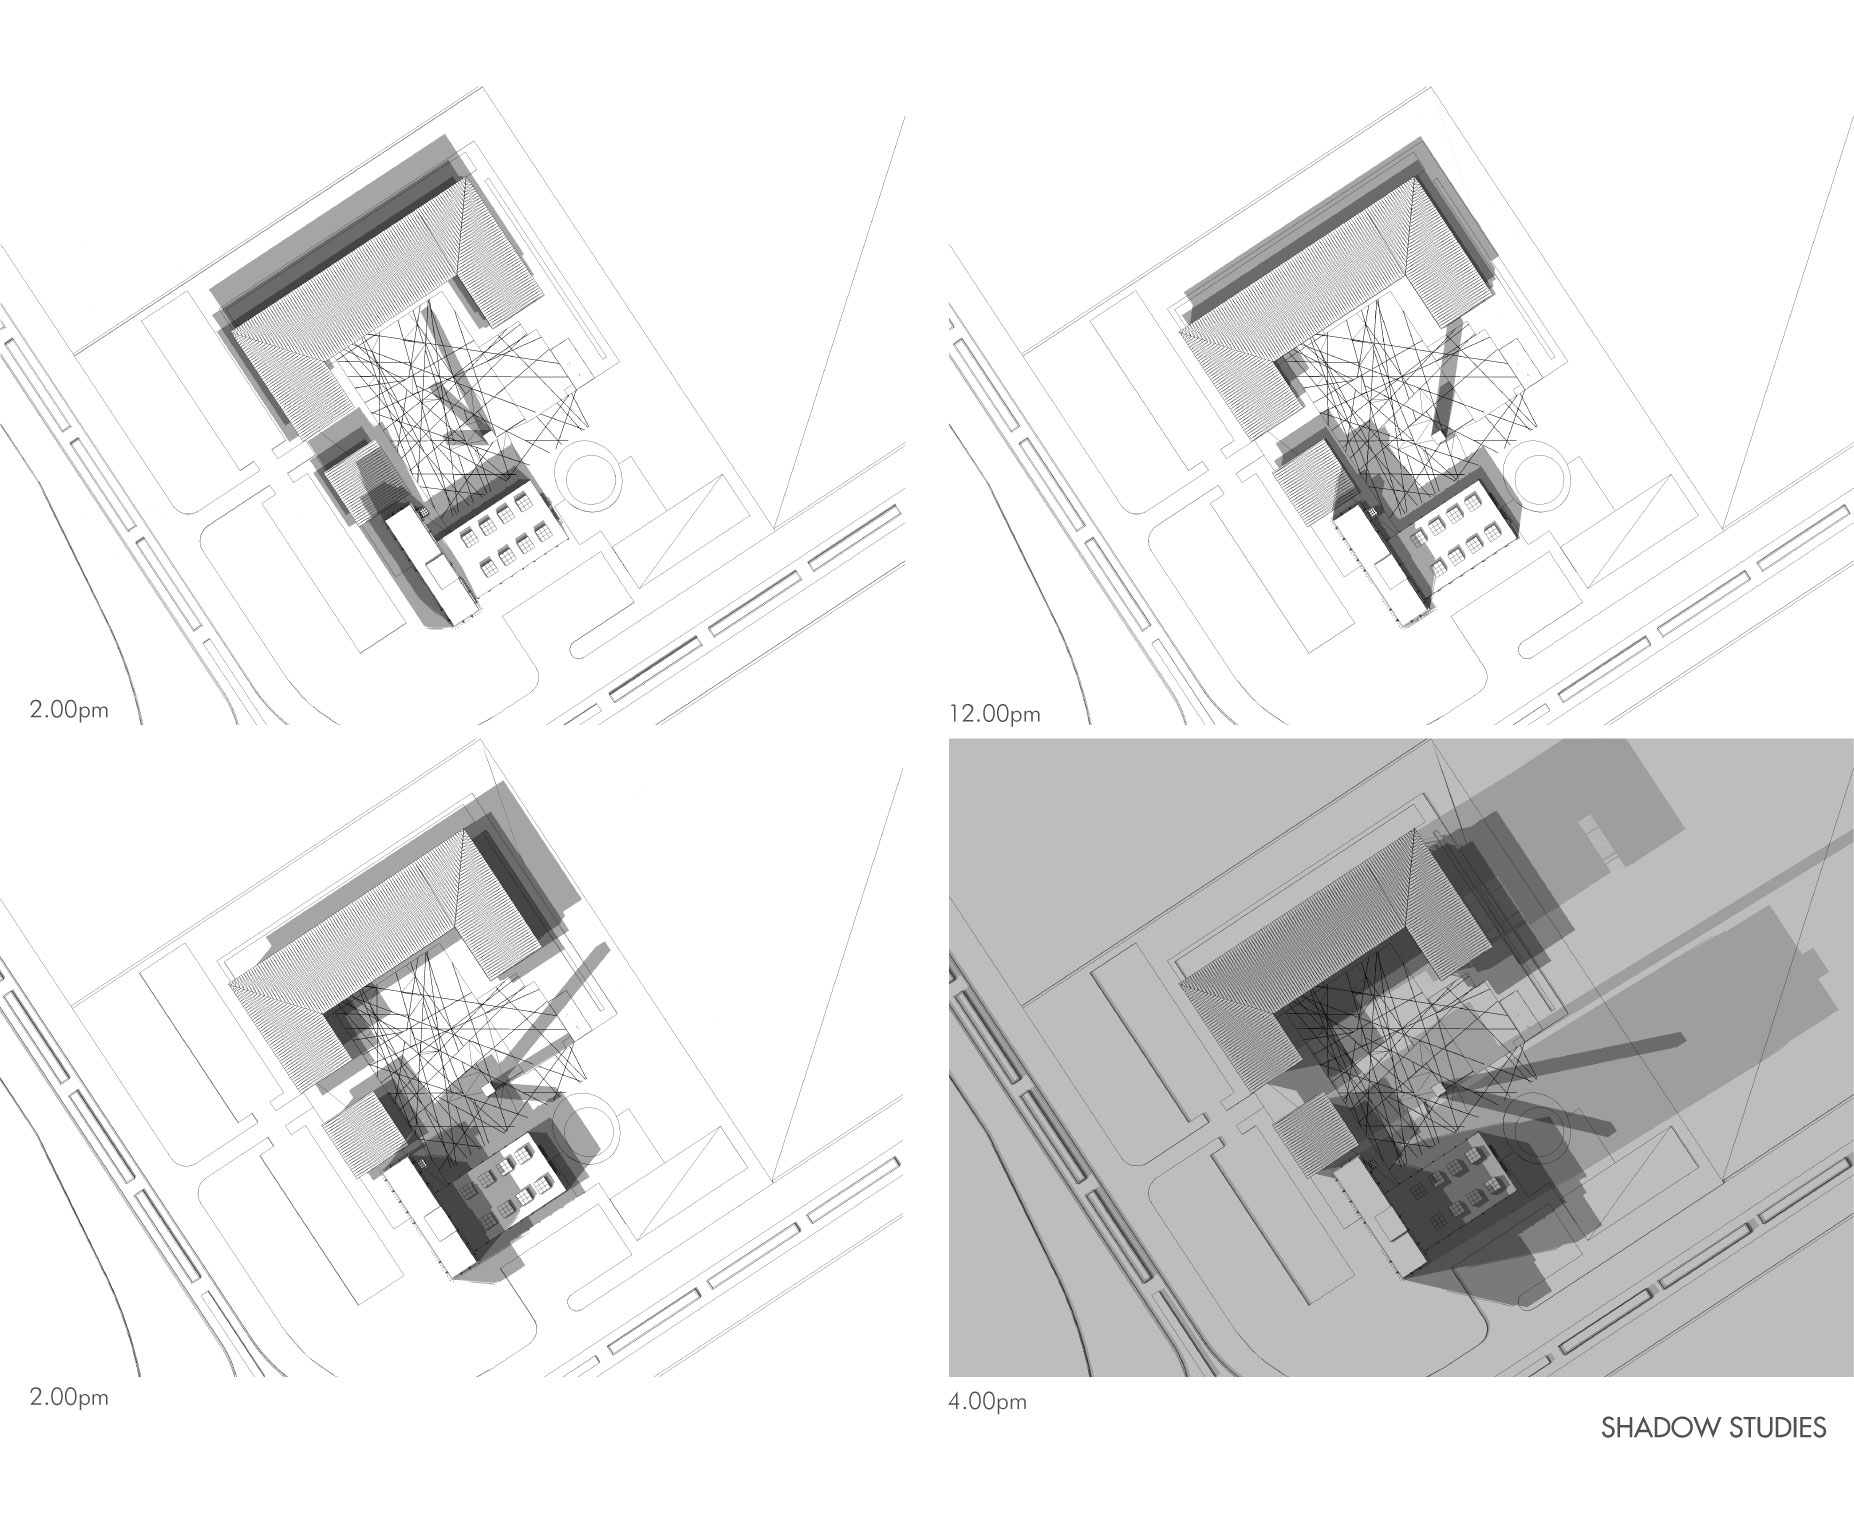 Resized Shadows studies-01.jpg